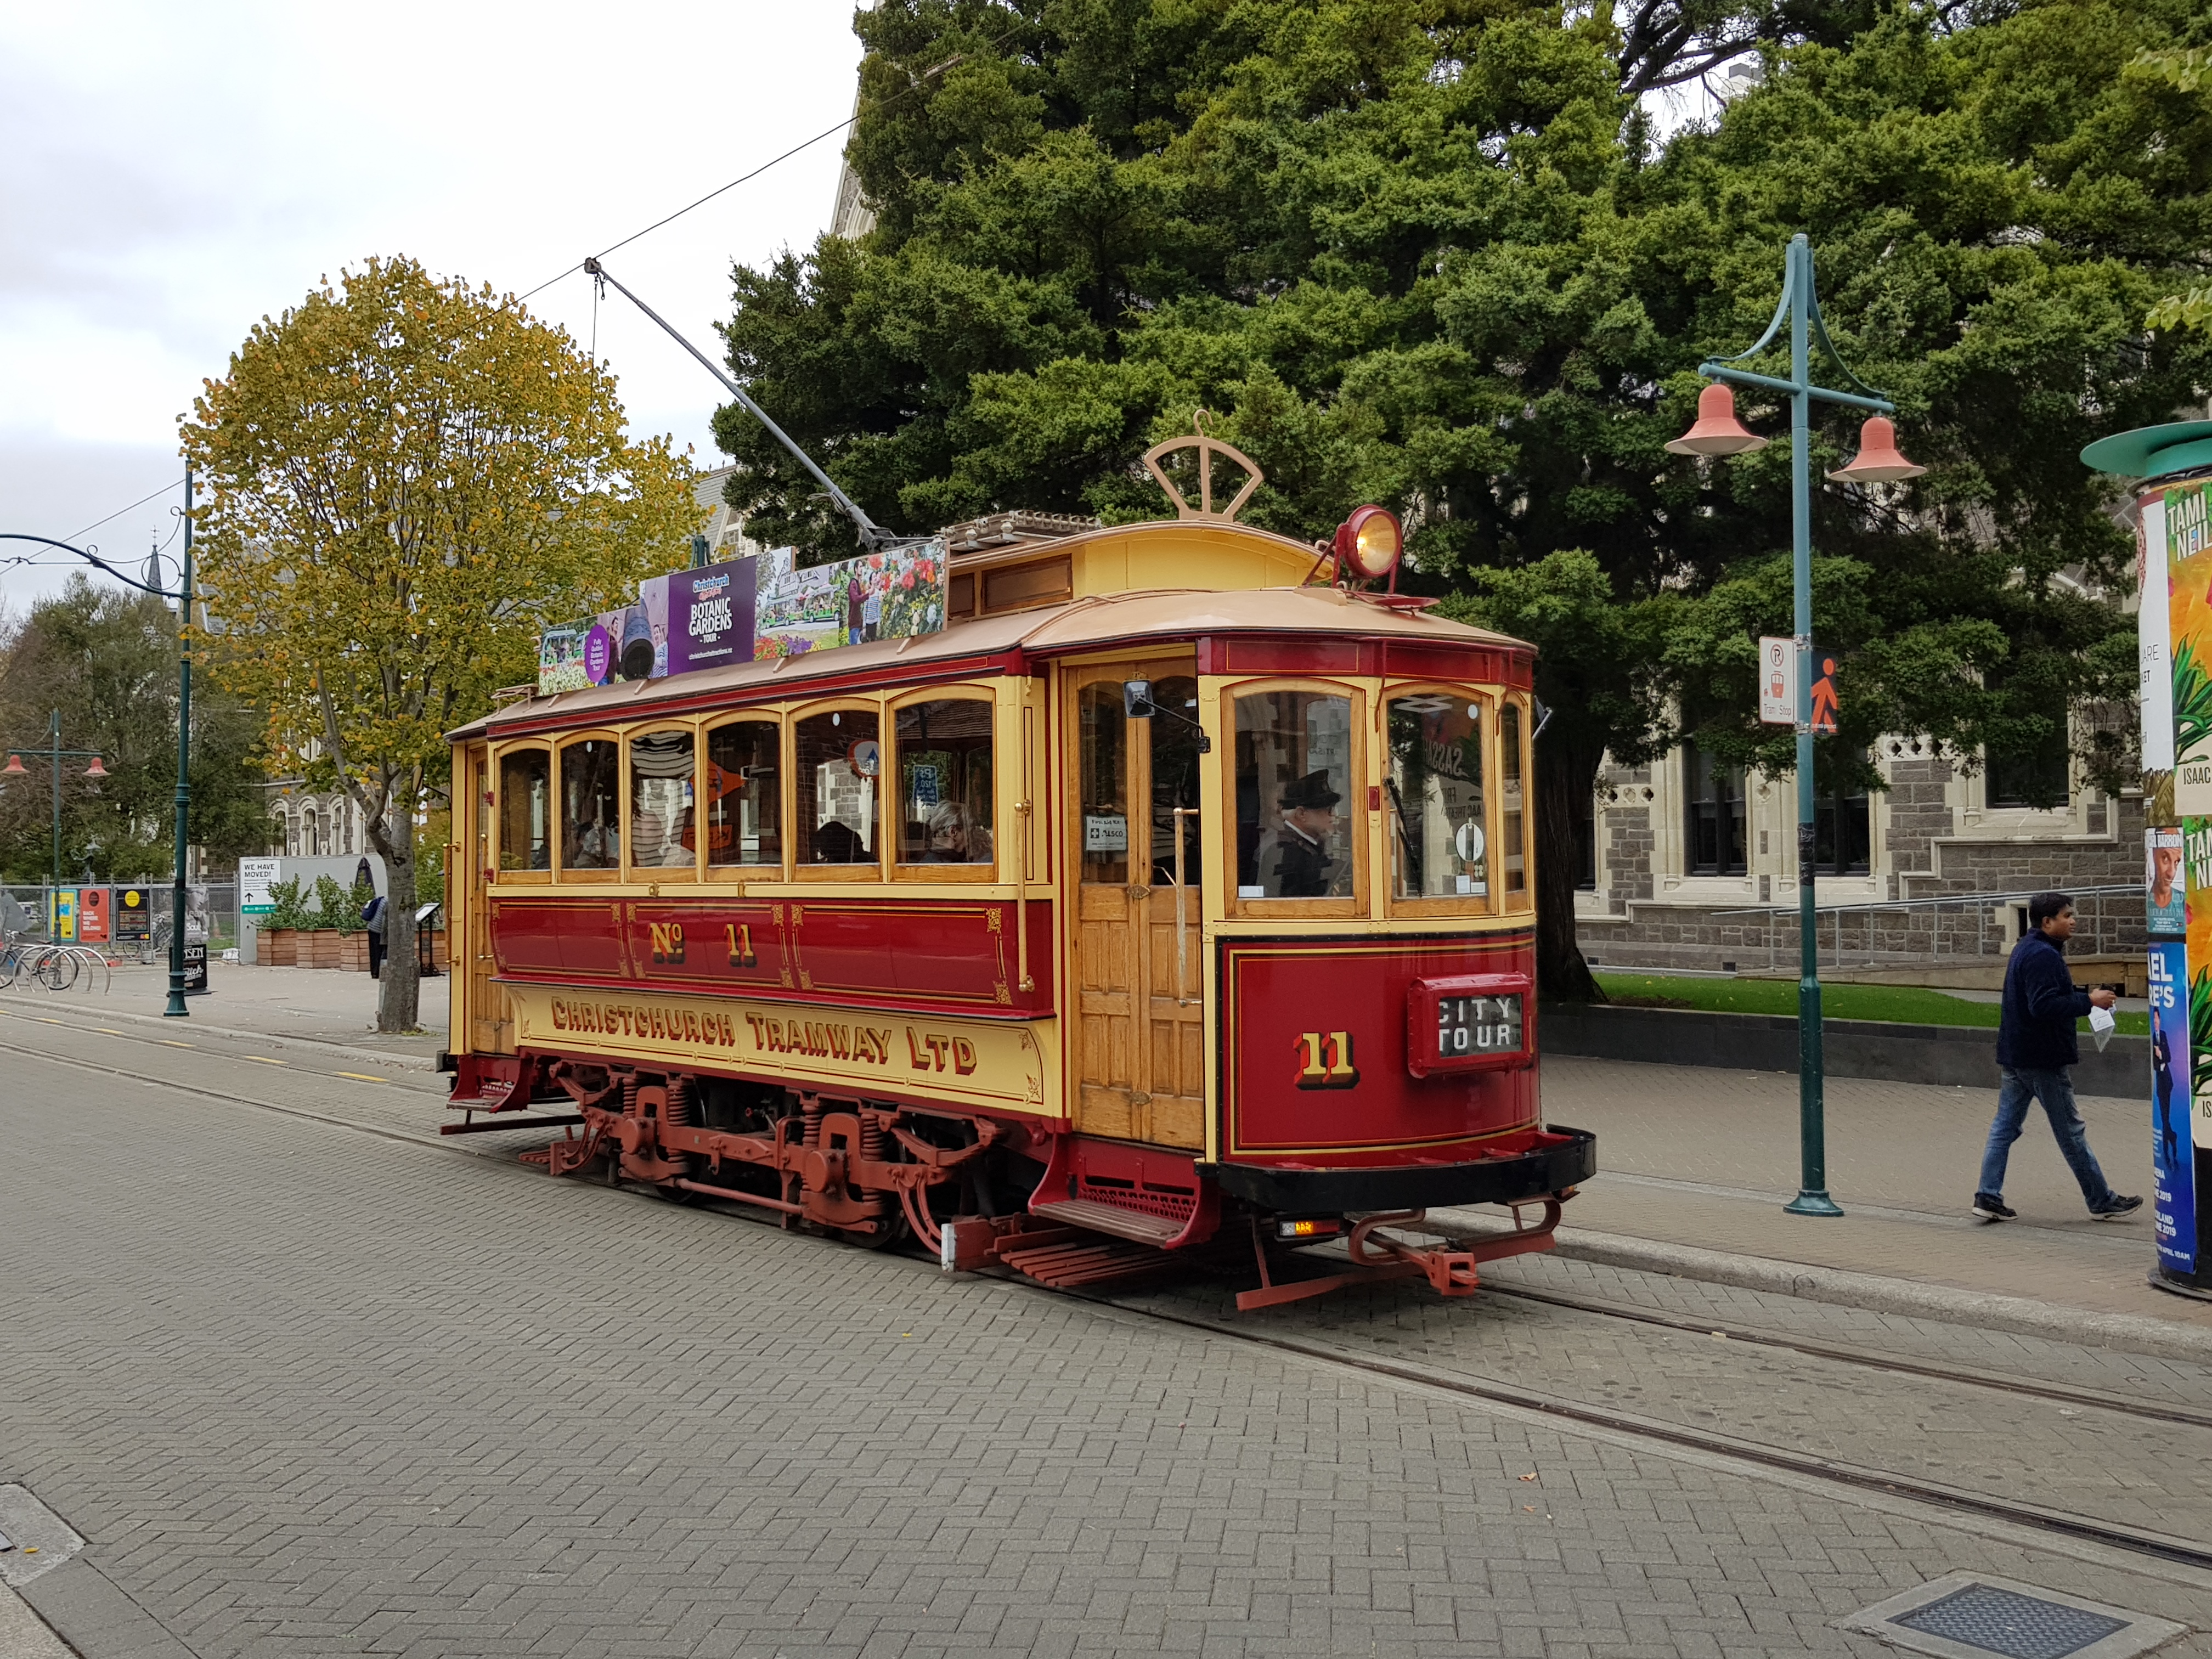 Christchurch historic tram